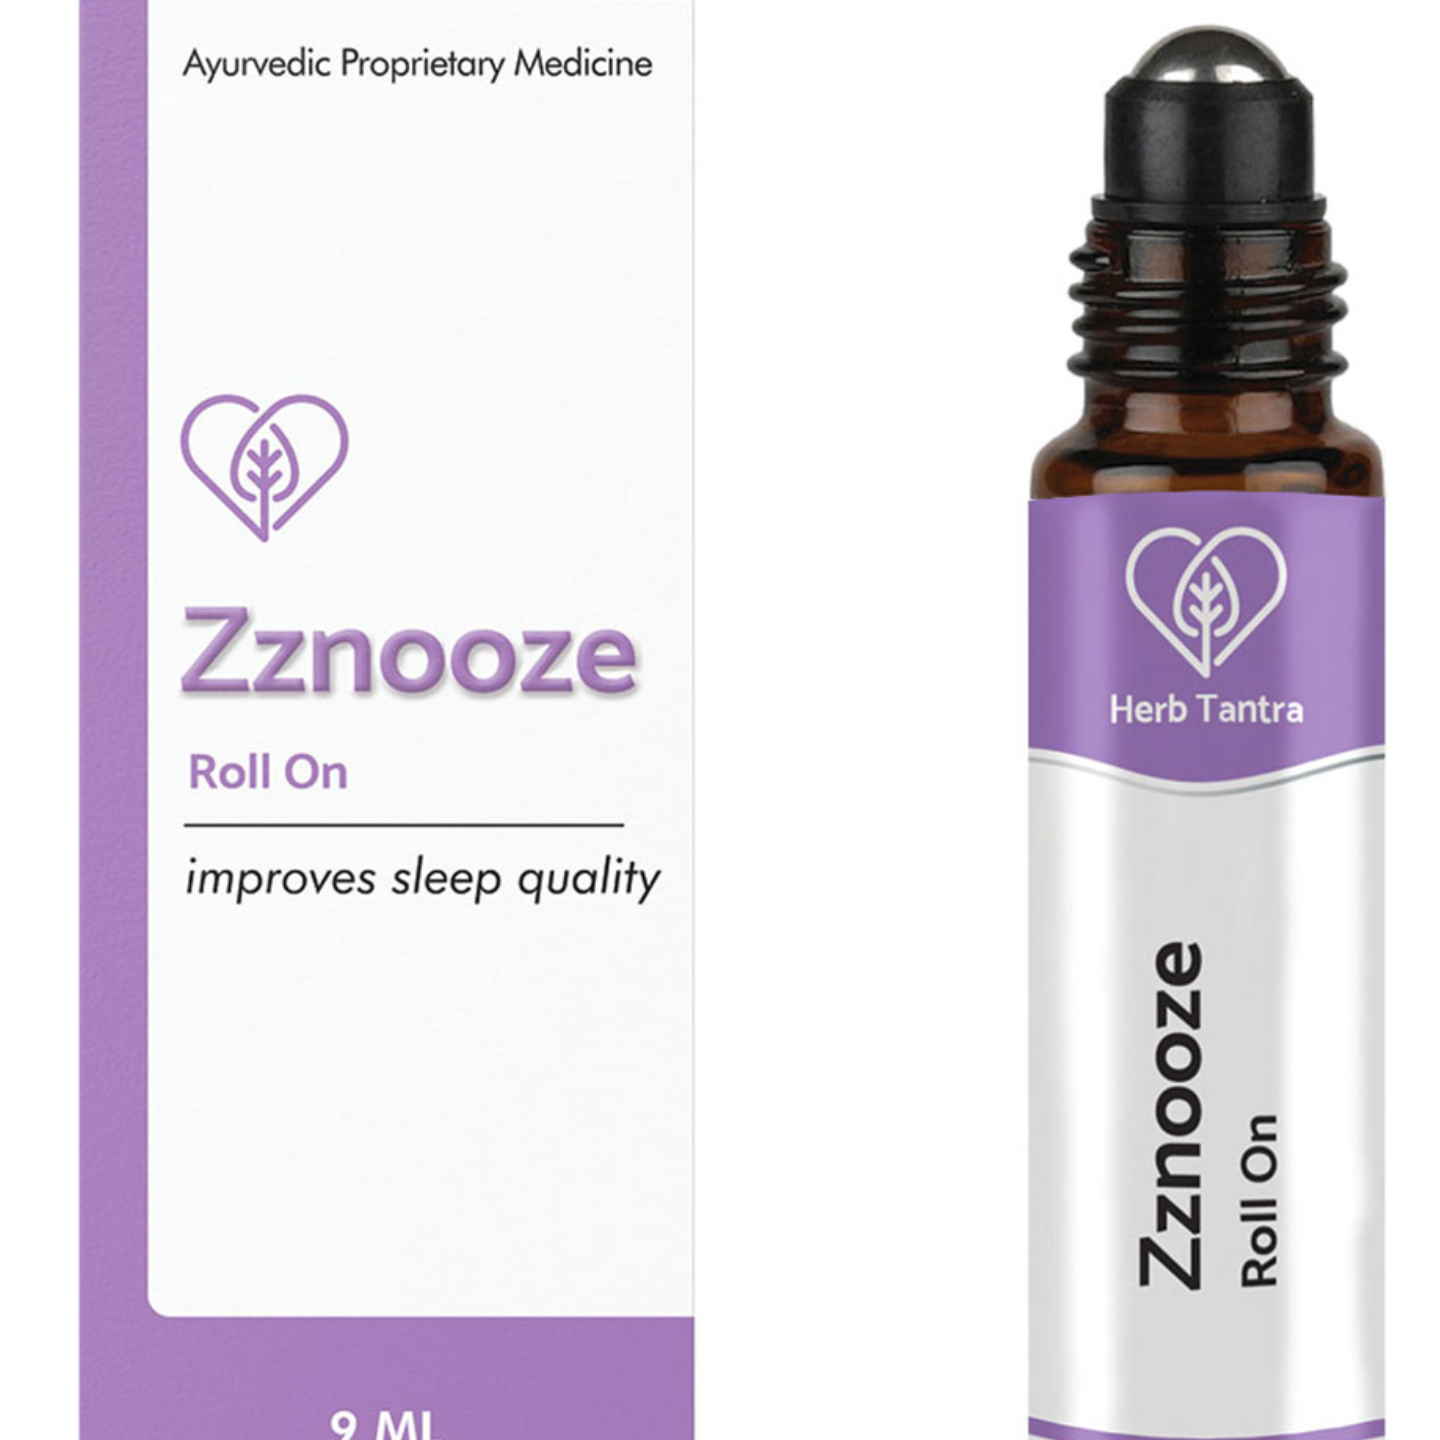 Herb Tantra Zznooze Roll On For Better Sleep quality (9 ml)